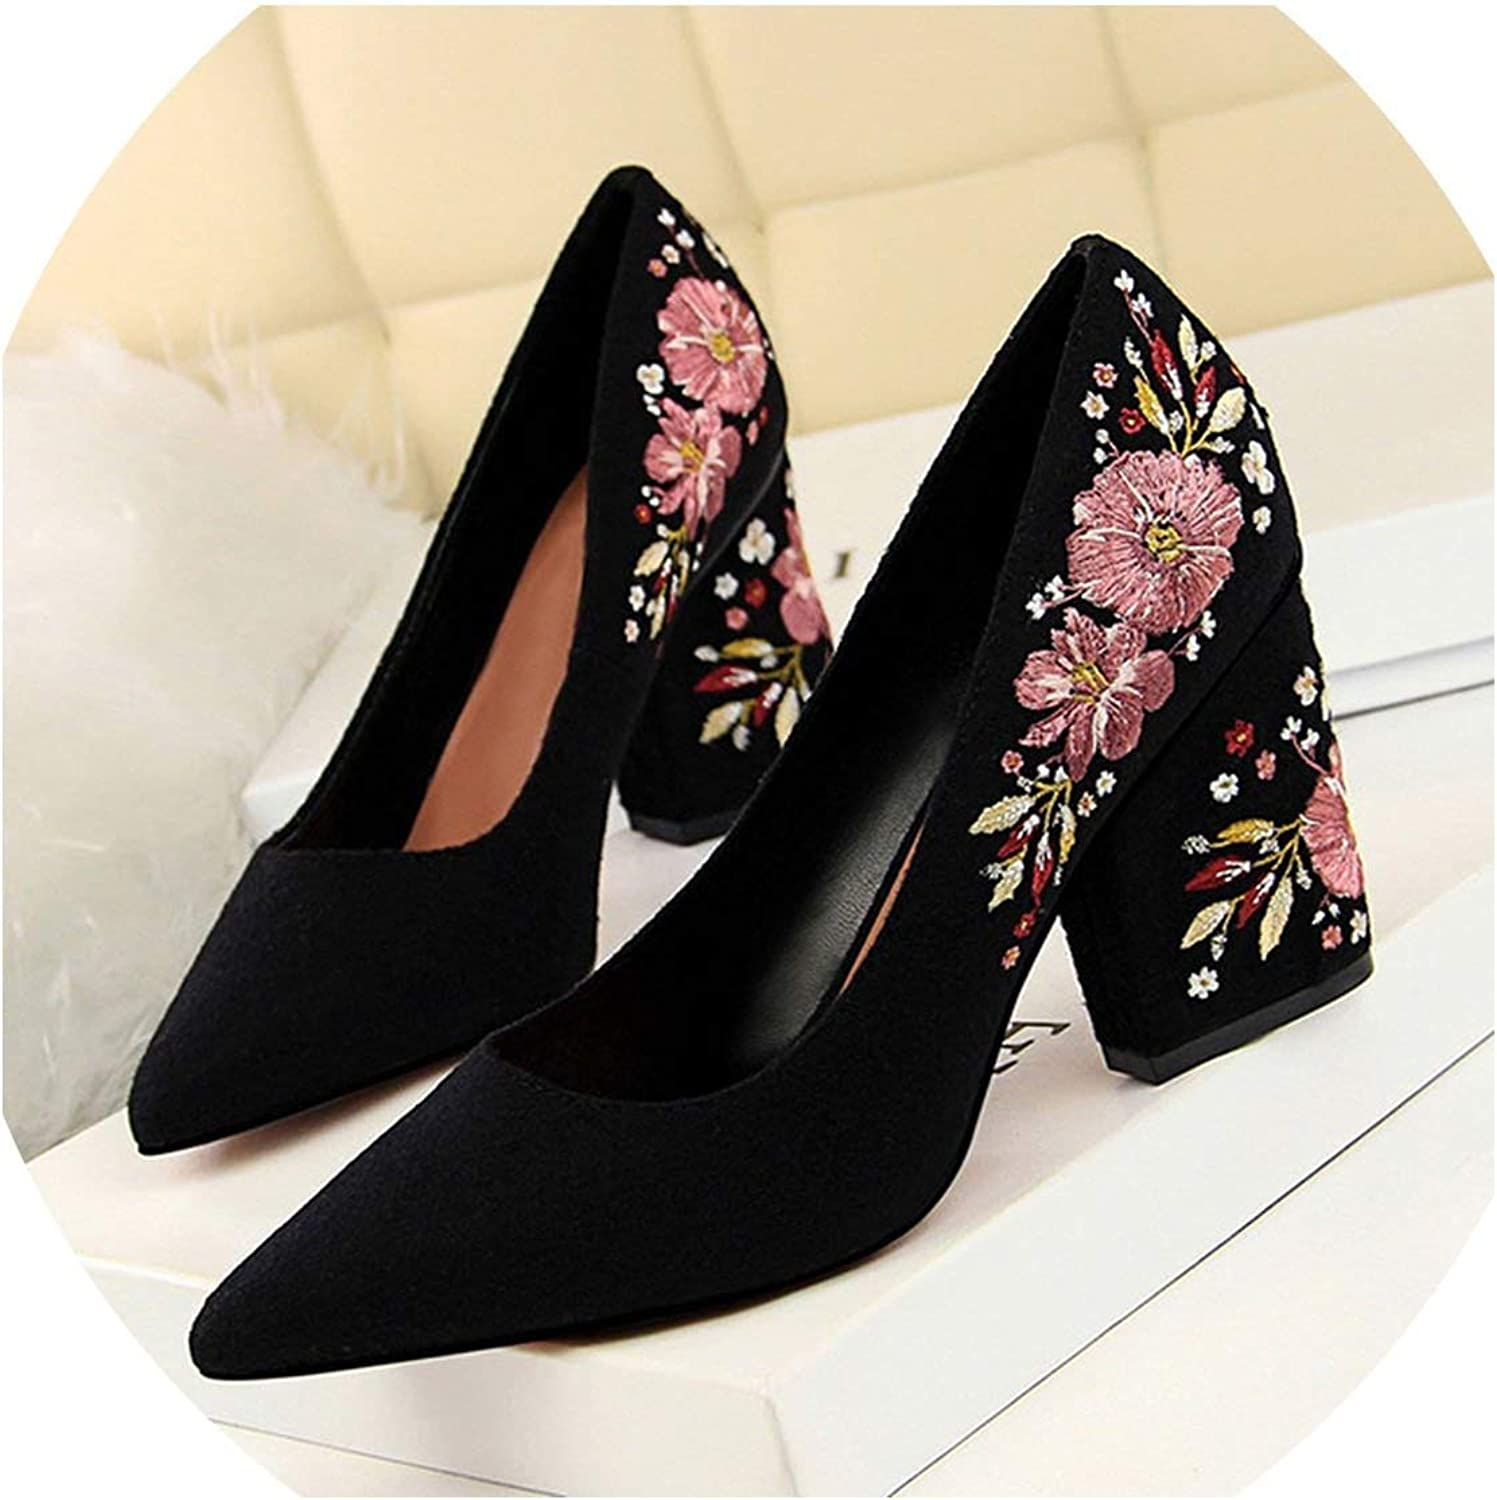 YP-fashion Flower Embroidery Women High Heel shoes 2019 Spring Women Pumps